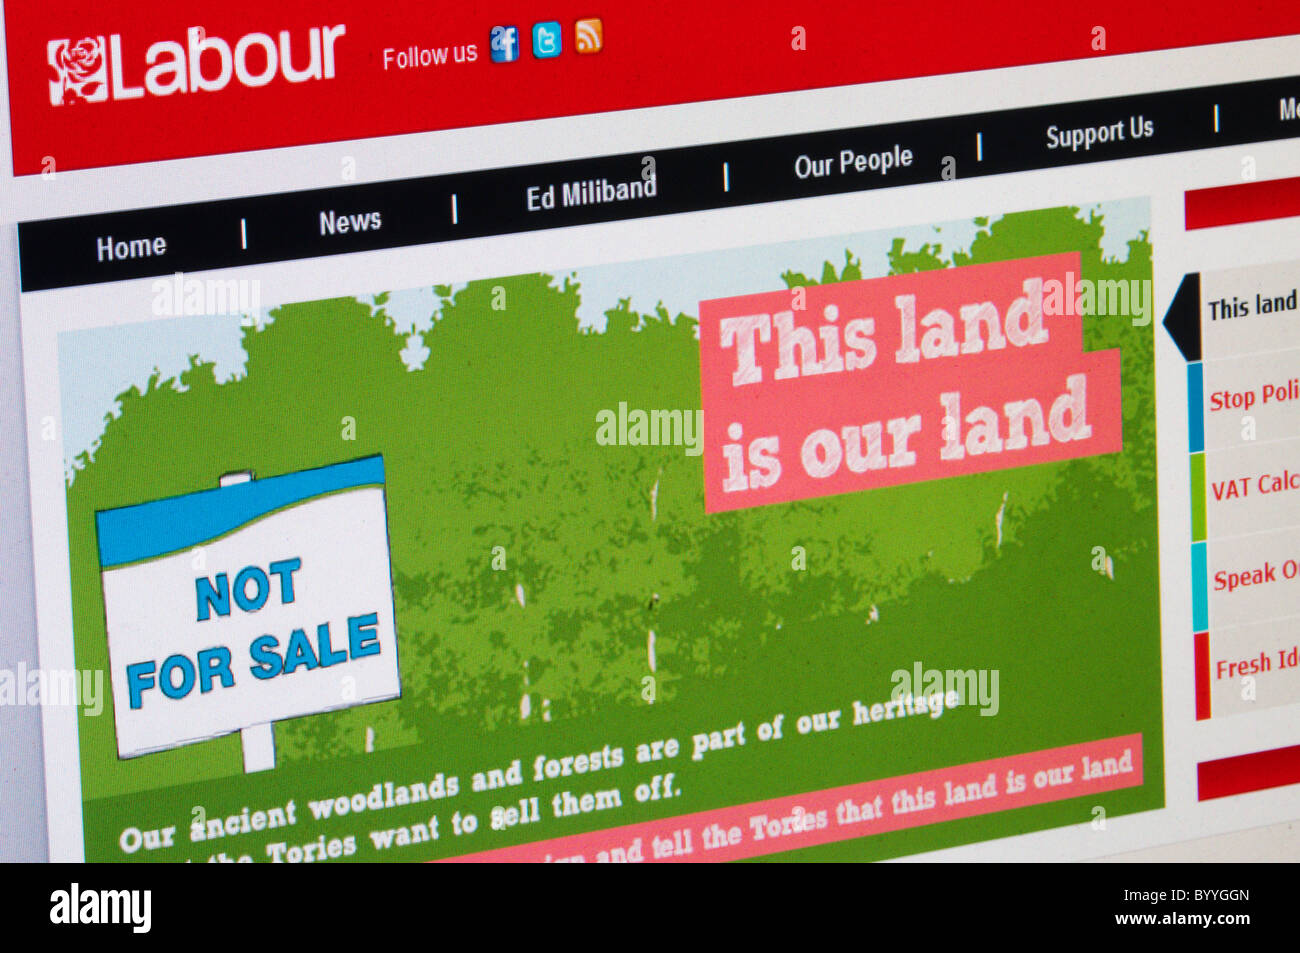 Labour Party web site quotes Woody Guthrie song 'This Land is our Land' protesting at the proposed sale - Stock Image